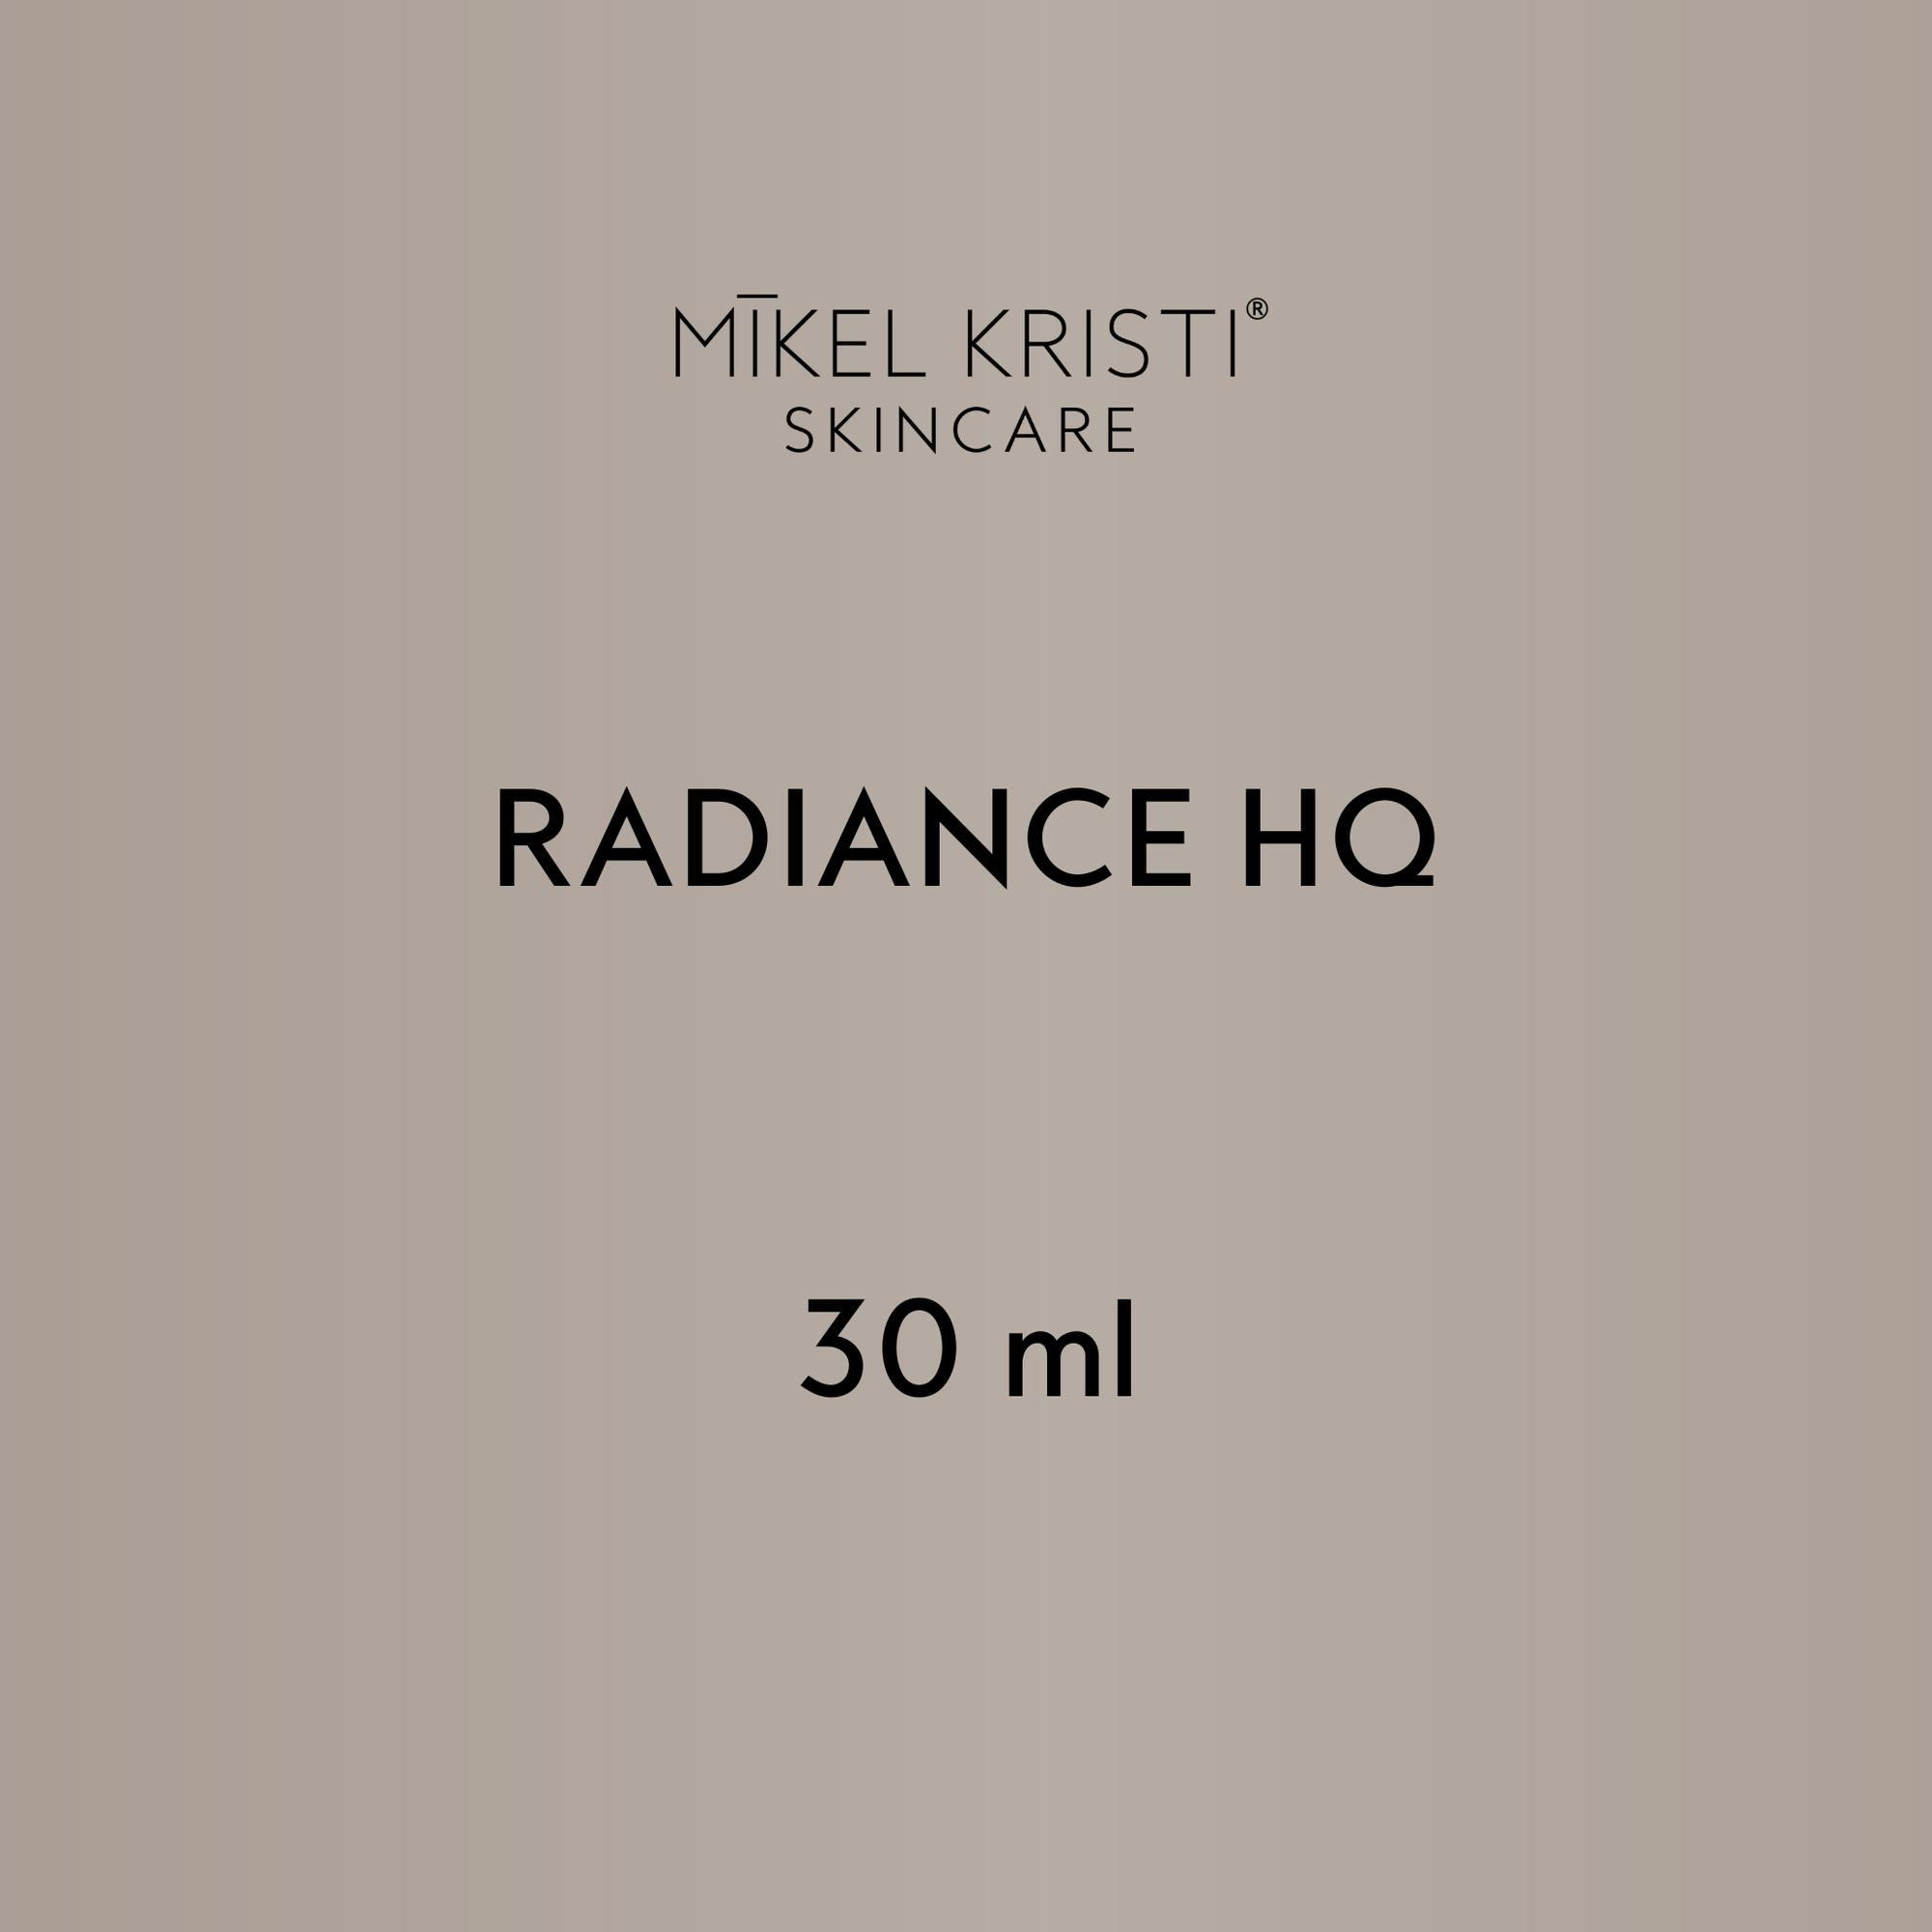 Radiance HQ is for Professional Use Only. Please contact wholesaleinfo@mikelkristi.com for pricing, approval, or to learn more.